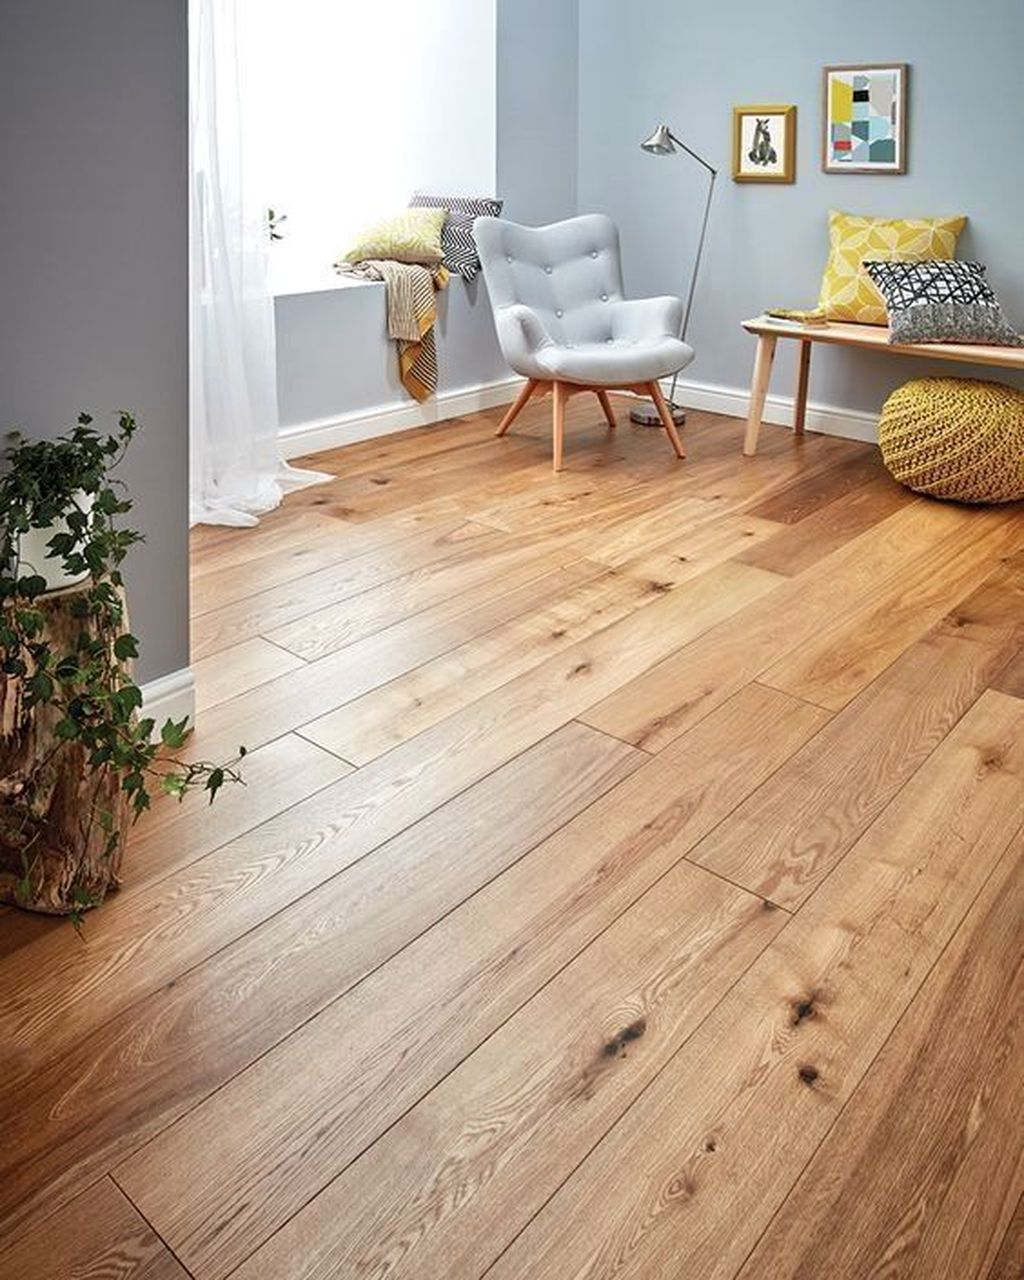 Amazing Bamboo Flooring Ideas For Living Room 14